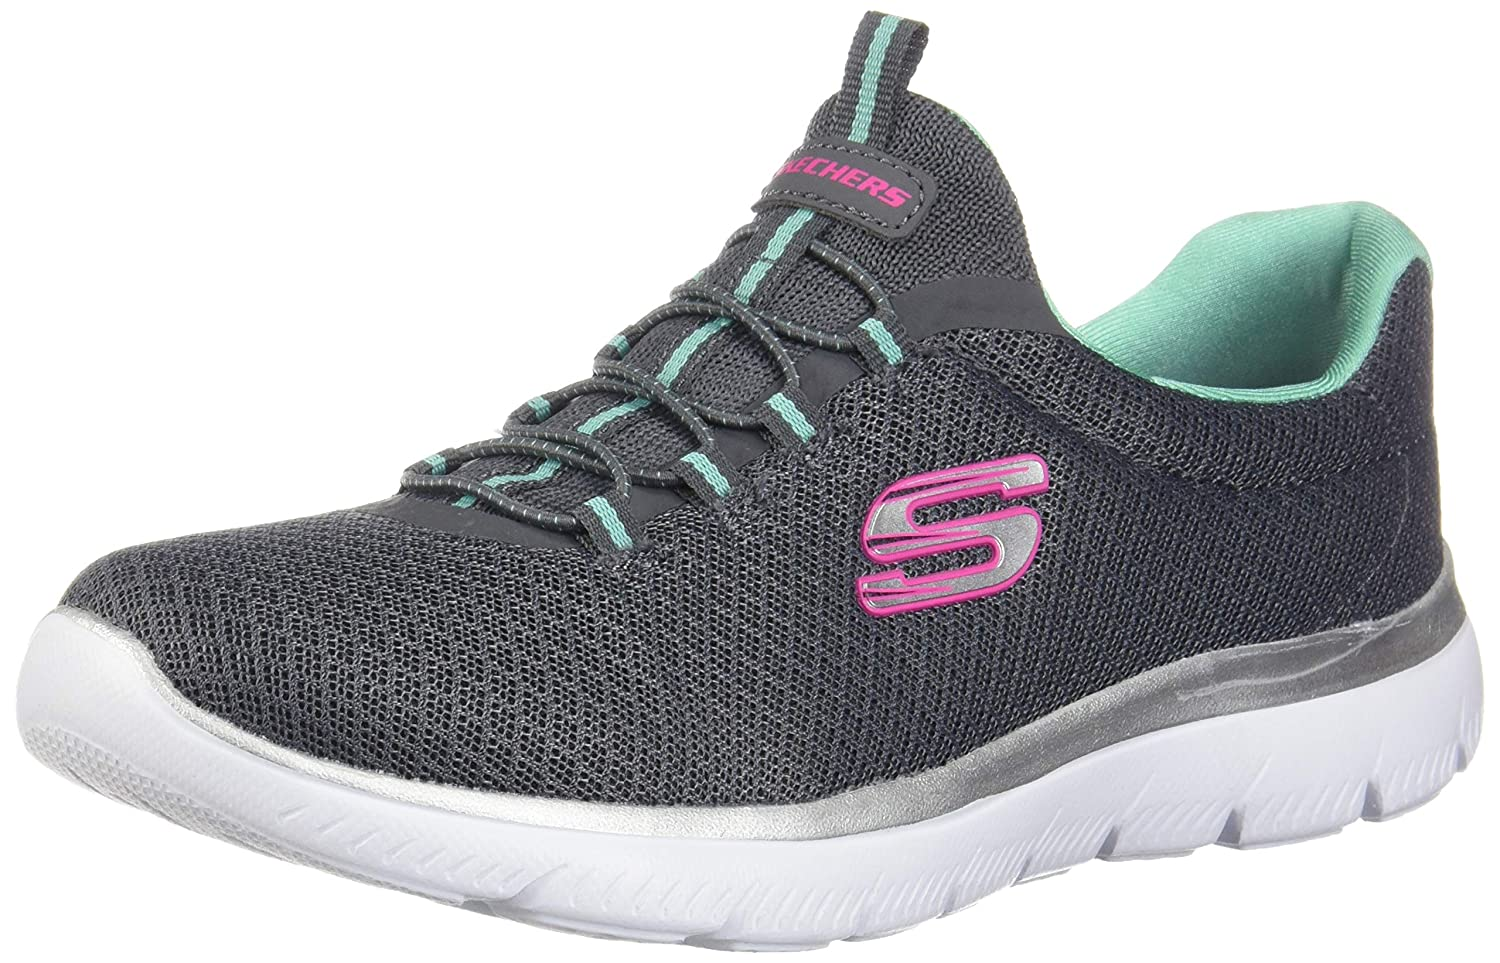 da5dd9a43225e Skechers Women 12980 Low-Top Trainers: Amazon.co.uk: Shoes & Bags